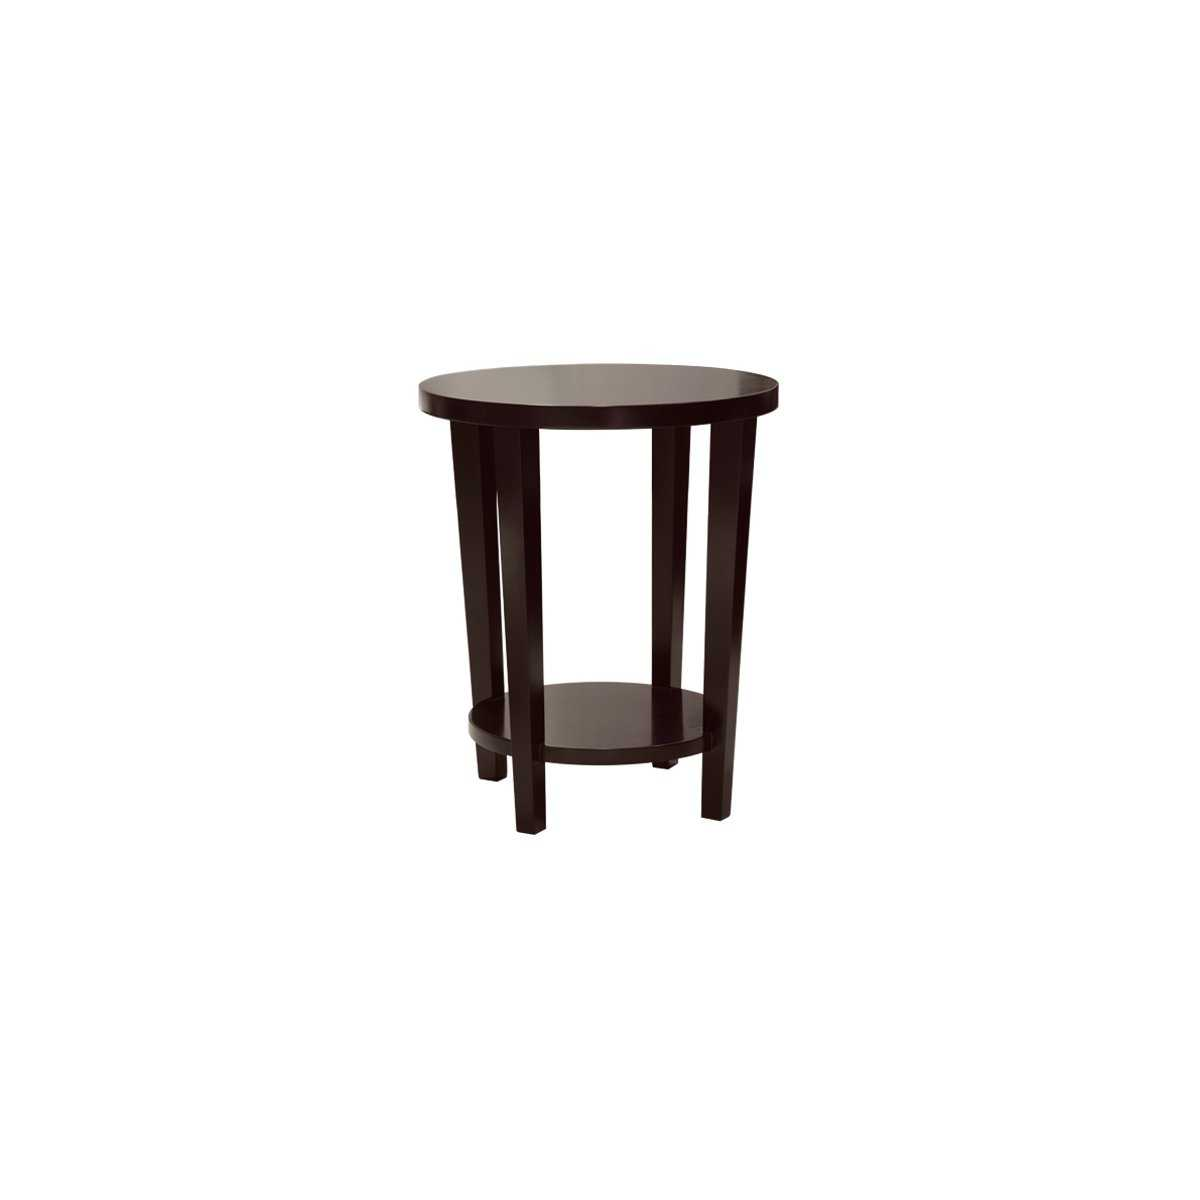 living room tall occasional table sofa side with drawer accent storage white small student desk target patio dining round end tablecloth cherry and chairs black metal hall chests